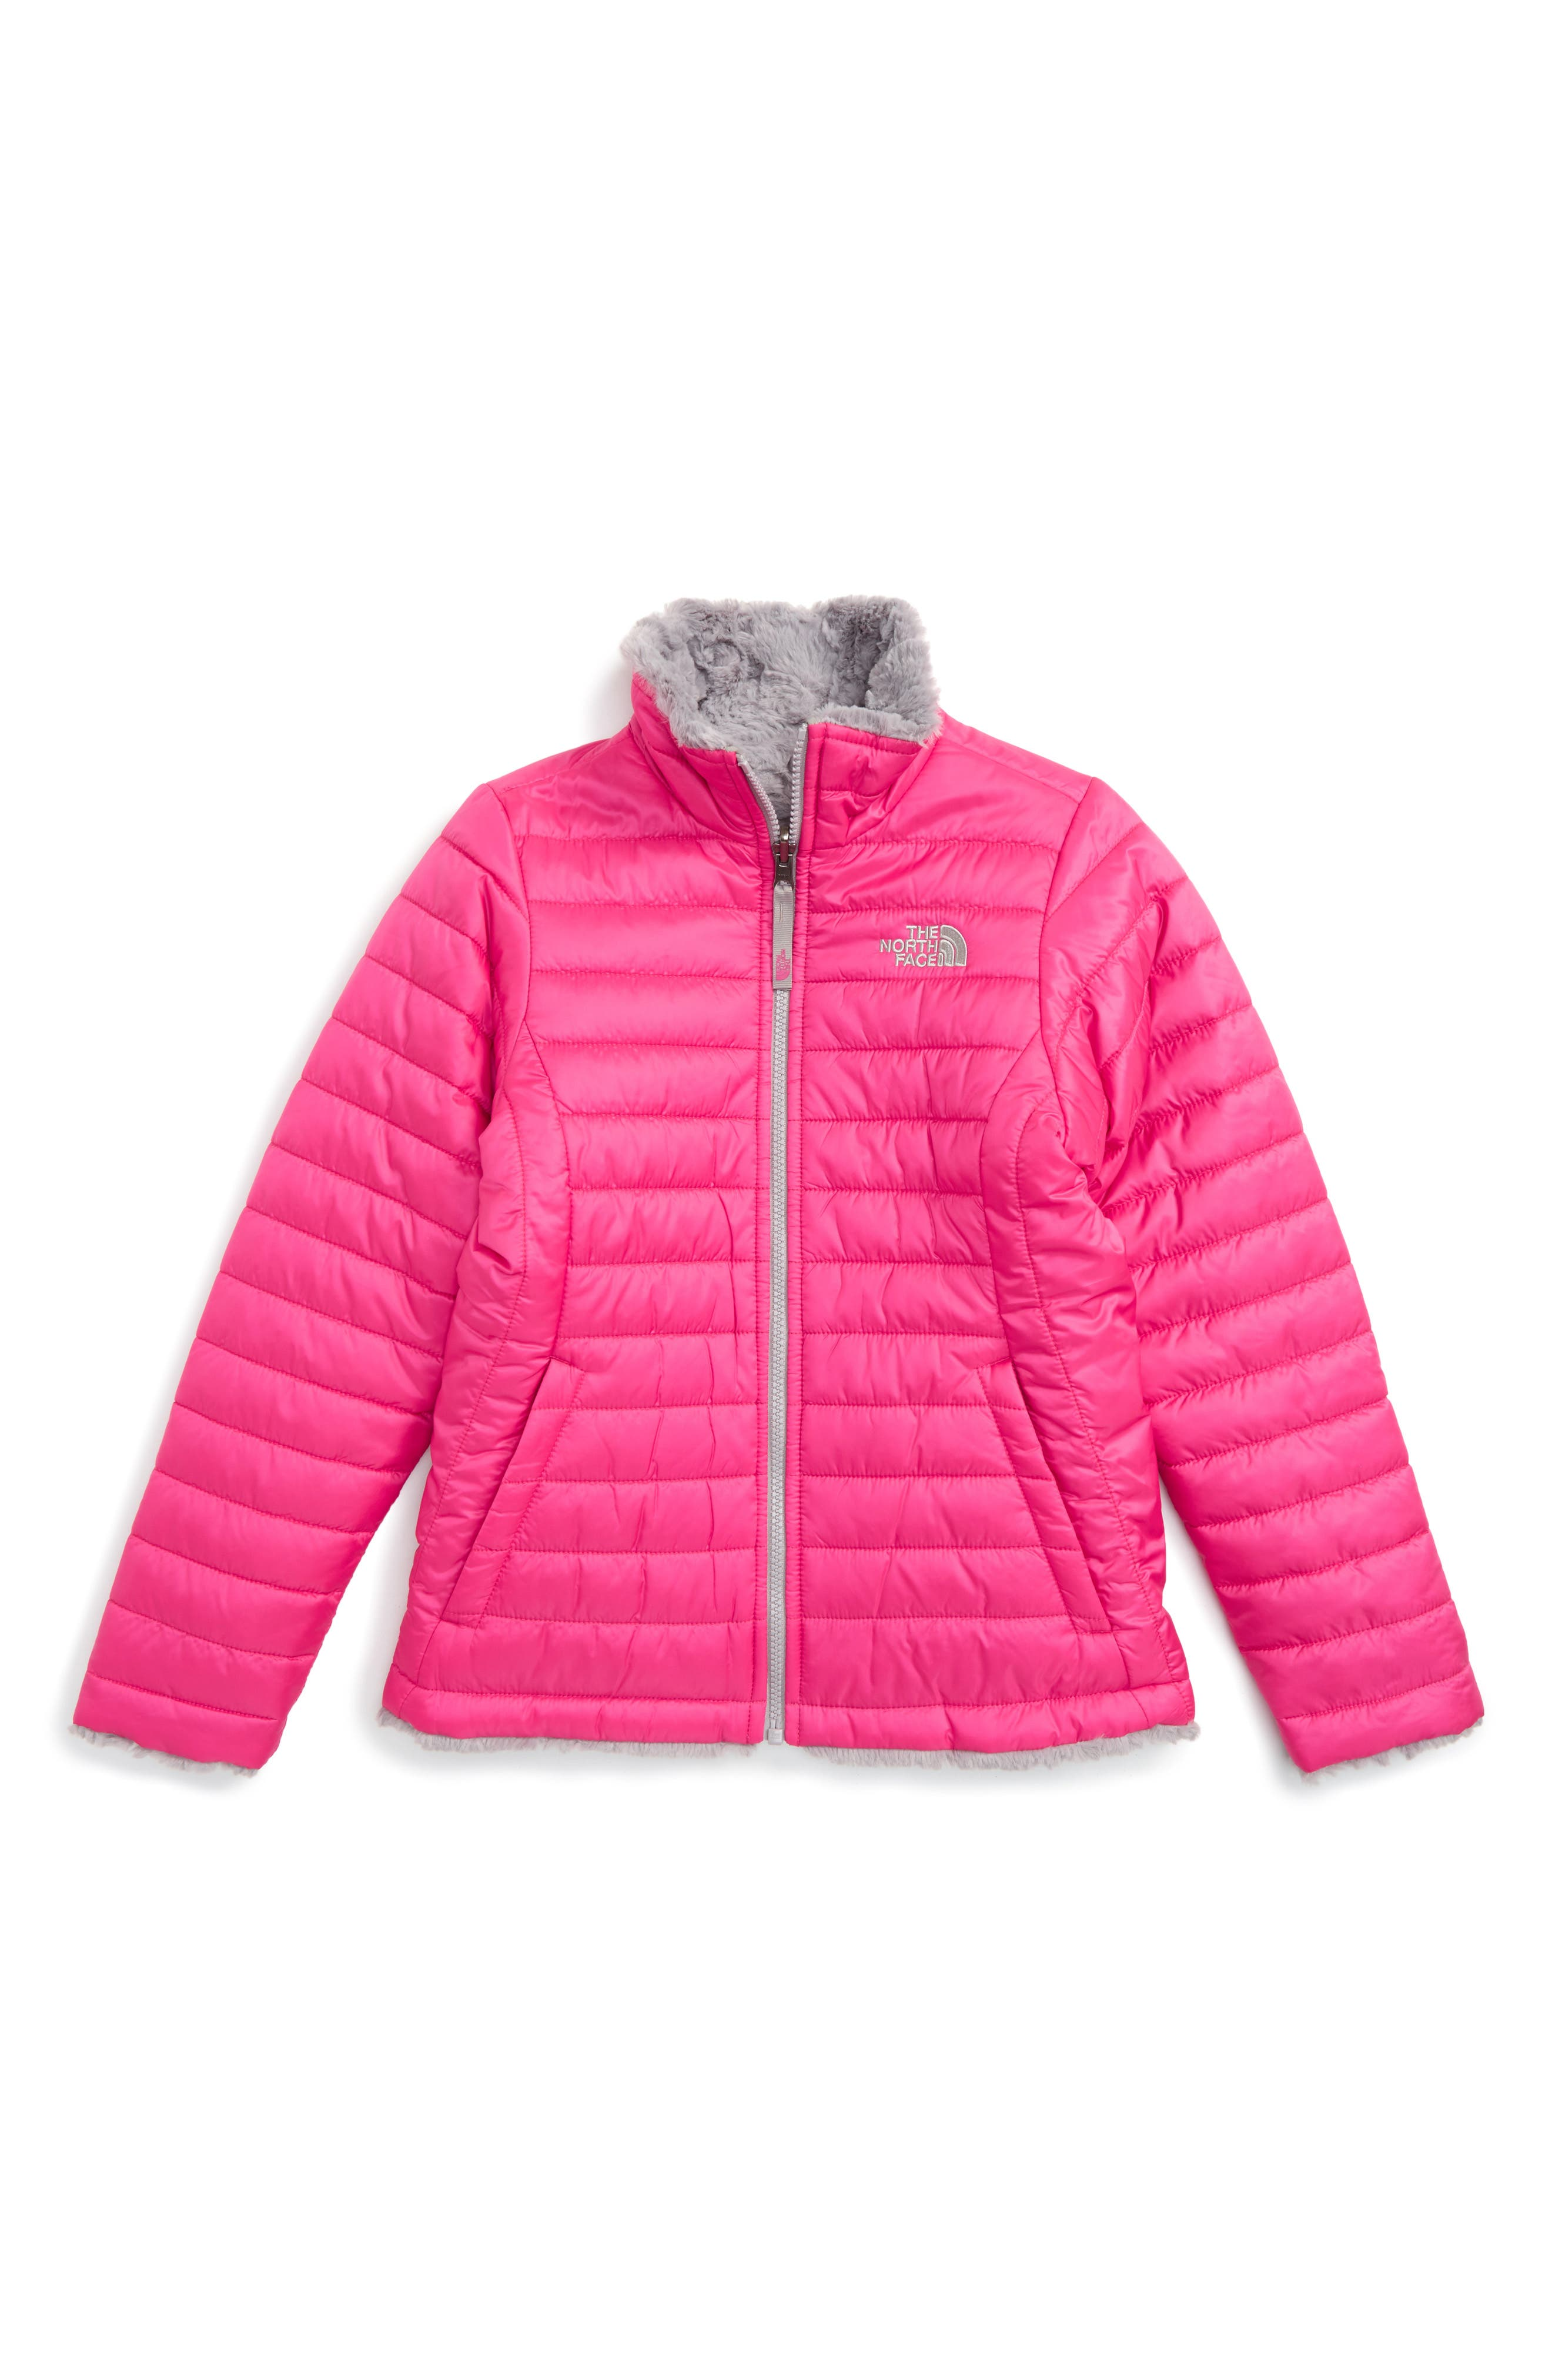 Alternate Image 1 Selected - The North Face Mossbud Reversible Heatseeker™ Wind Resistant Jacket (Little Girls & Big Girls)